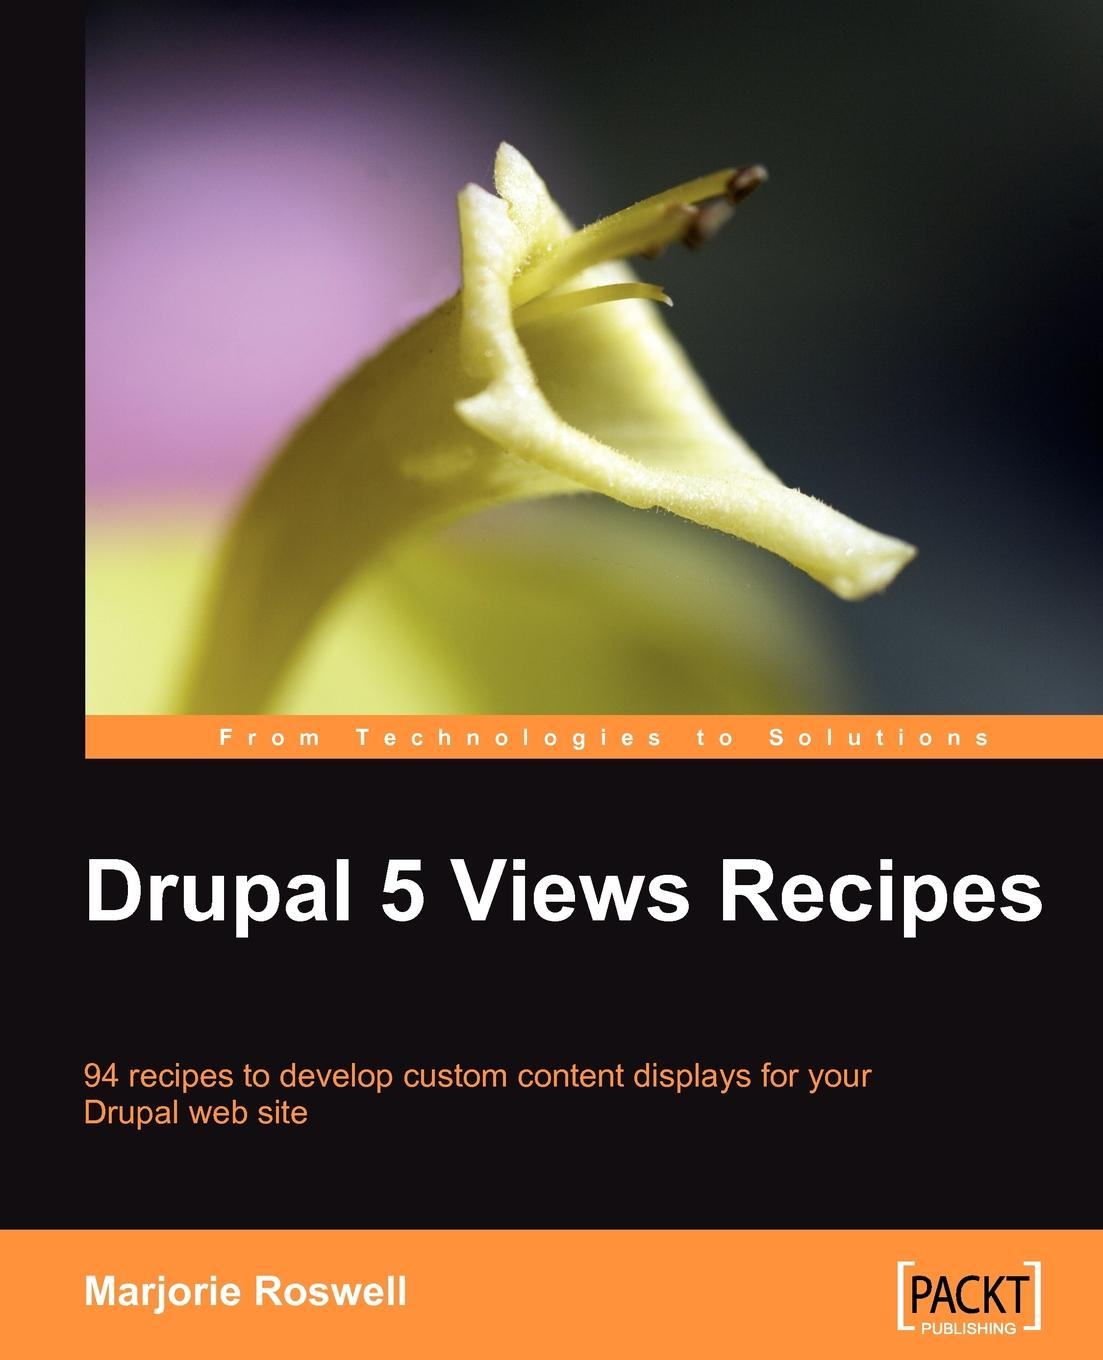 Marjorie Roswell Drupal 5 Views Recipes